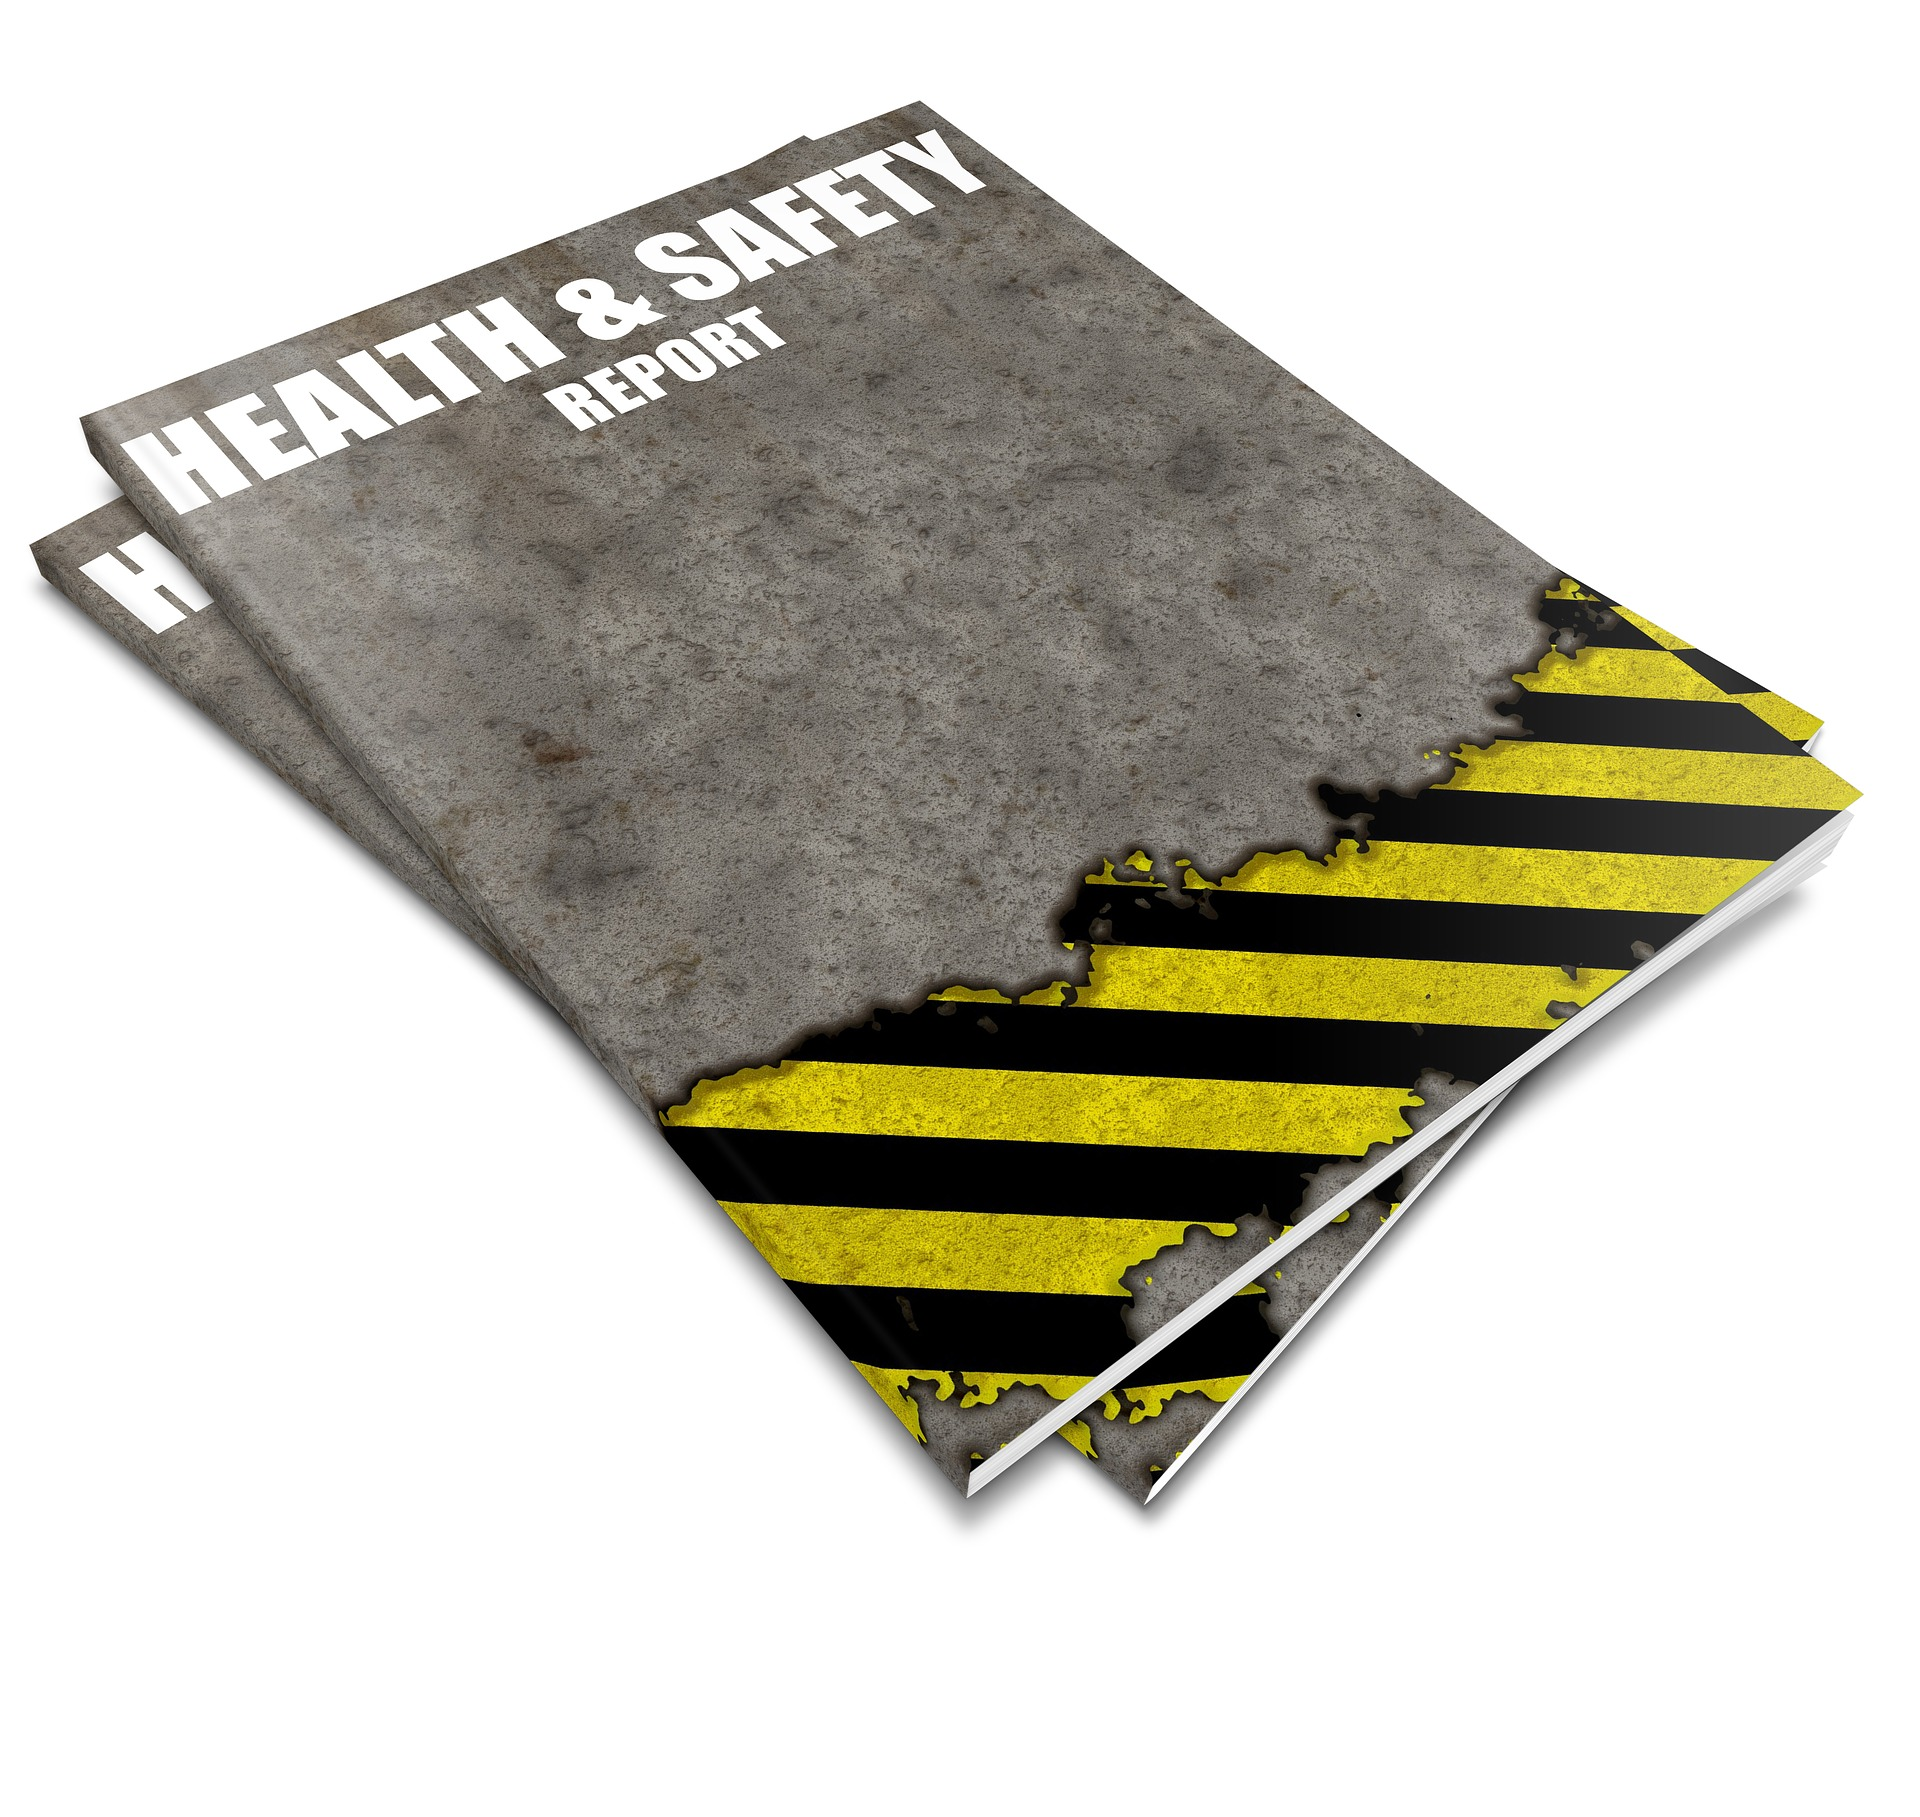 Health and safety of drivers at work 3 recent offences for firms and staff.jpg